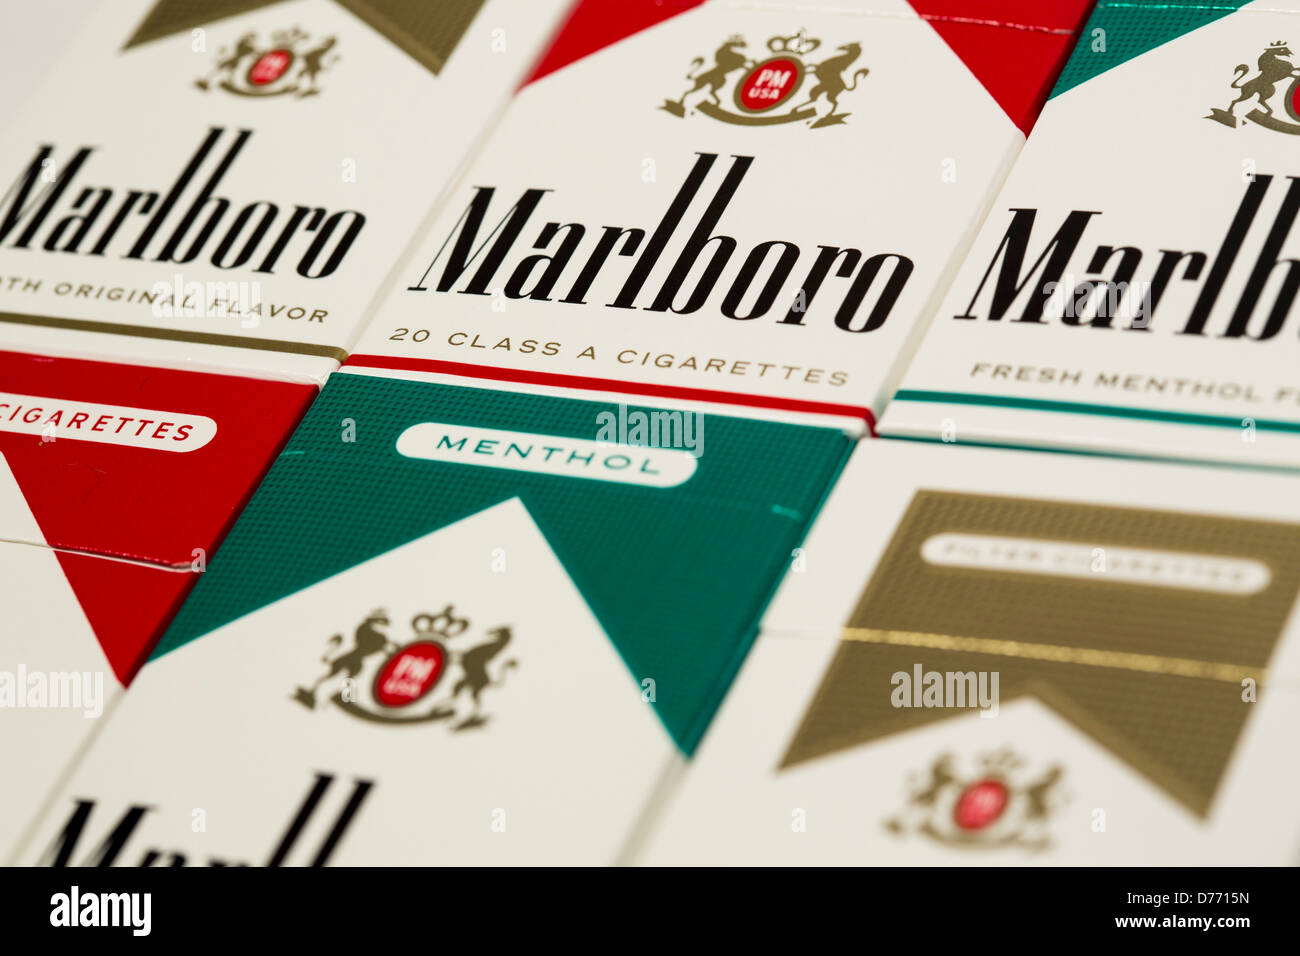 Buy Parliament cigarettes online Sweden